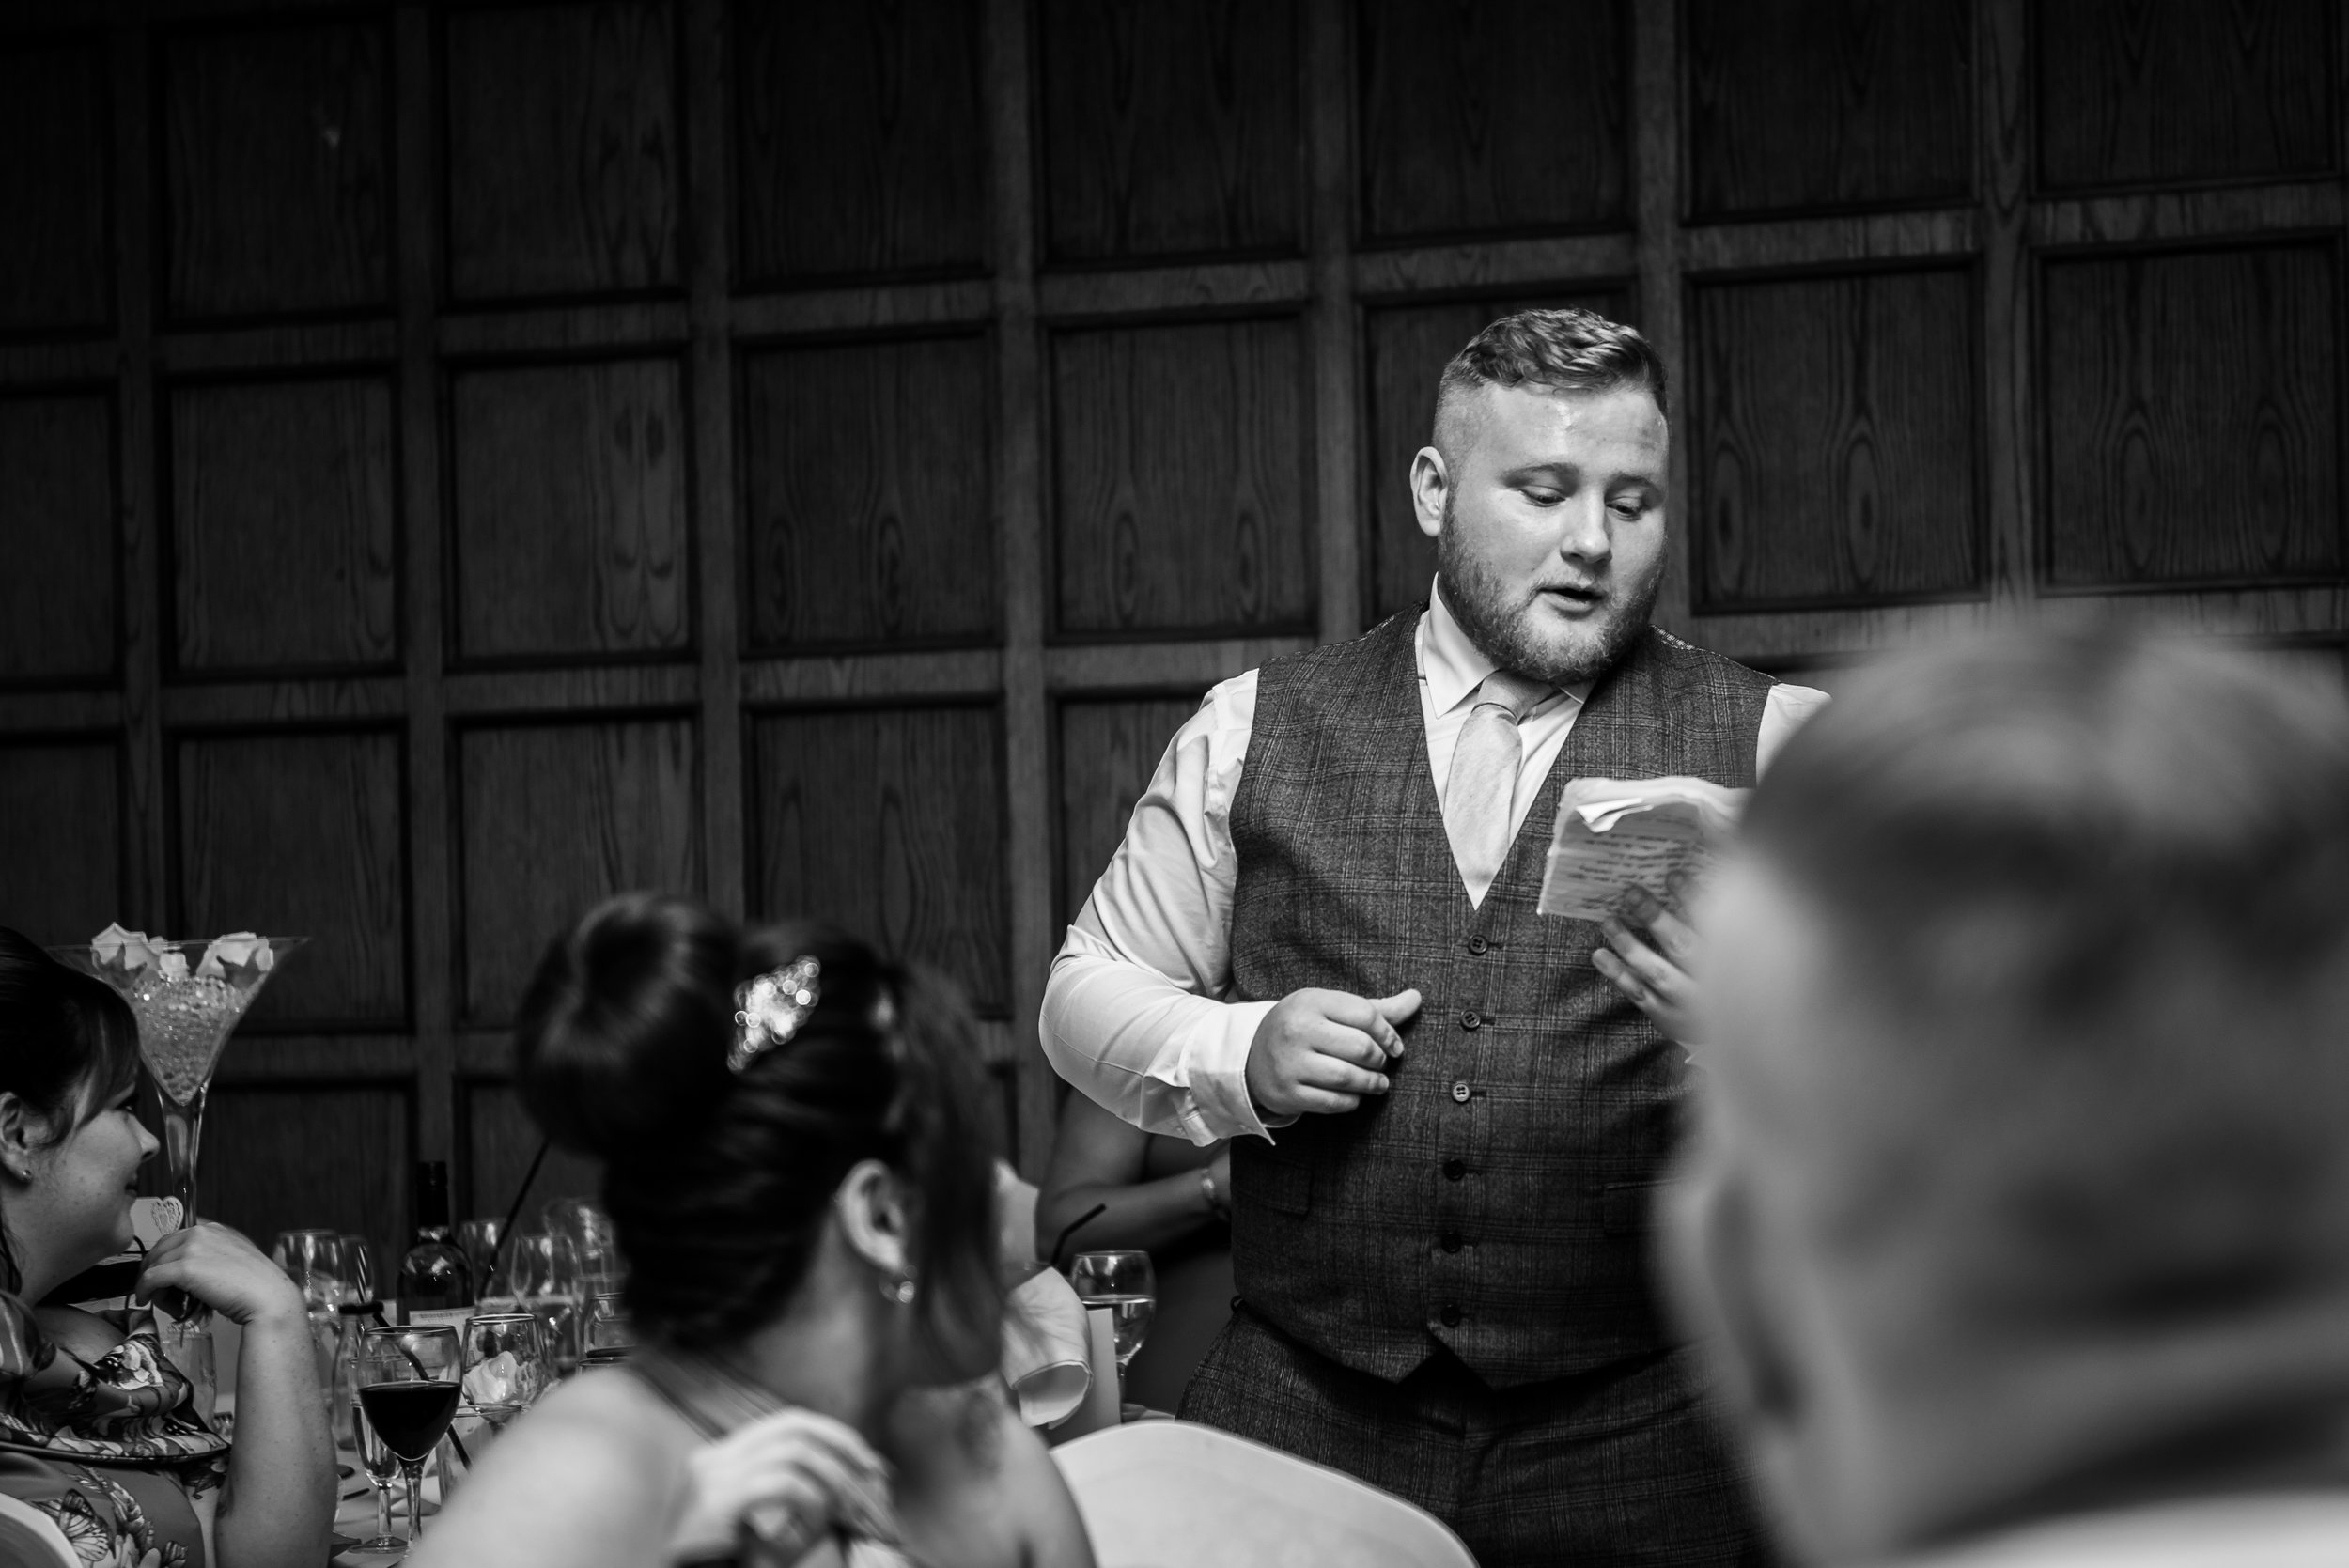 castle Bromwich hall hotel wedding photography natural black and white photography speeches best man speech